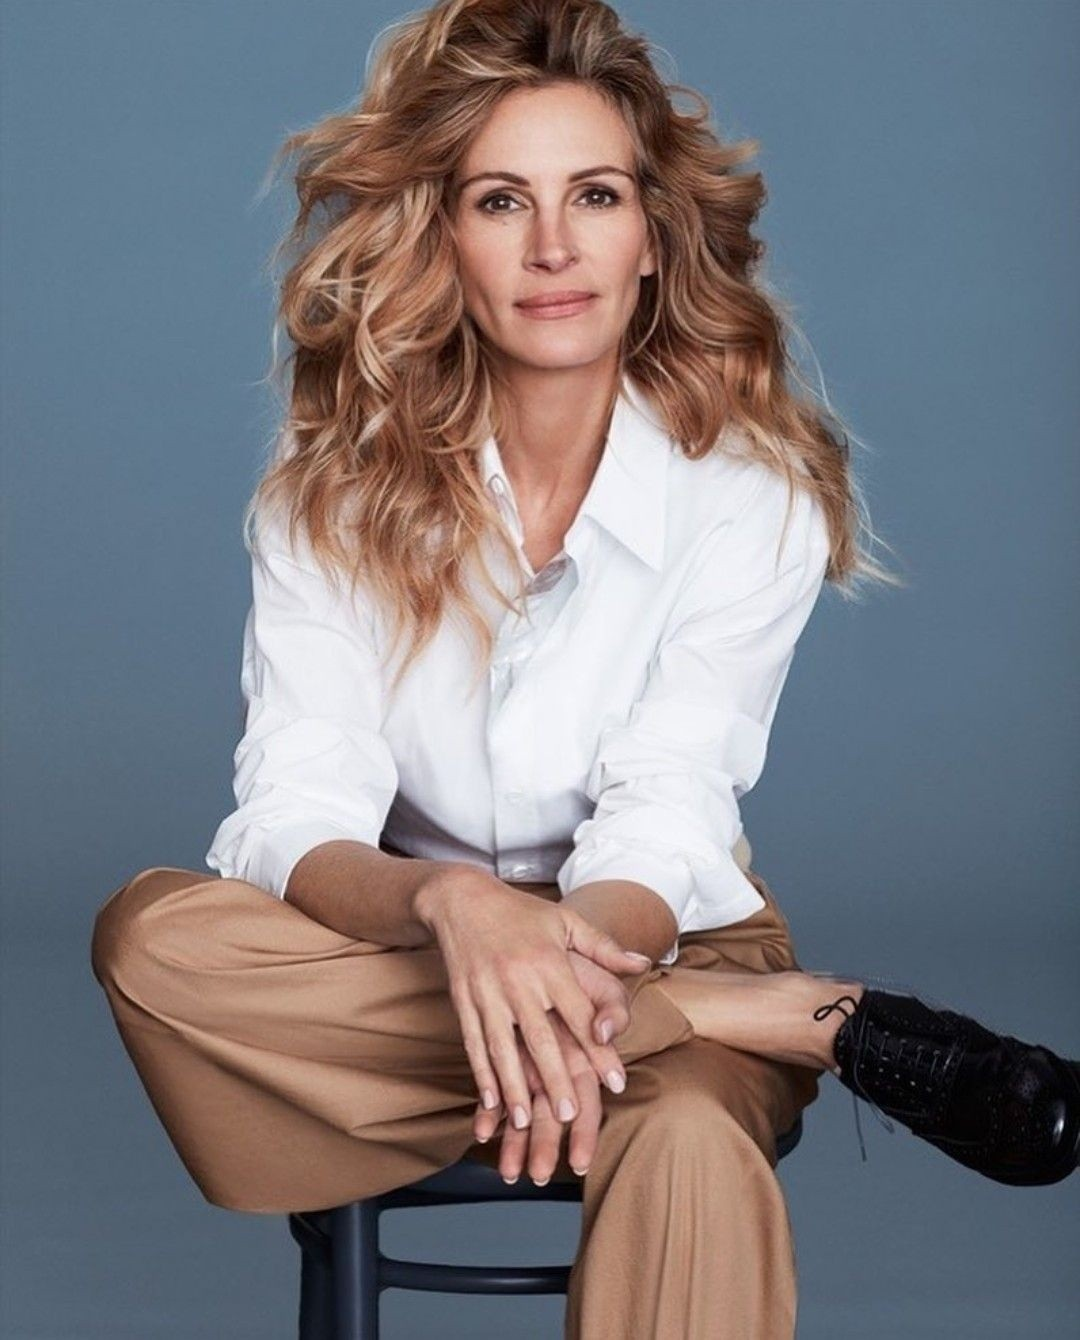 Julia Roberts 10 Celebrities with the Extremely Gross Hygiene Practices